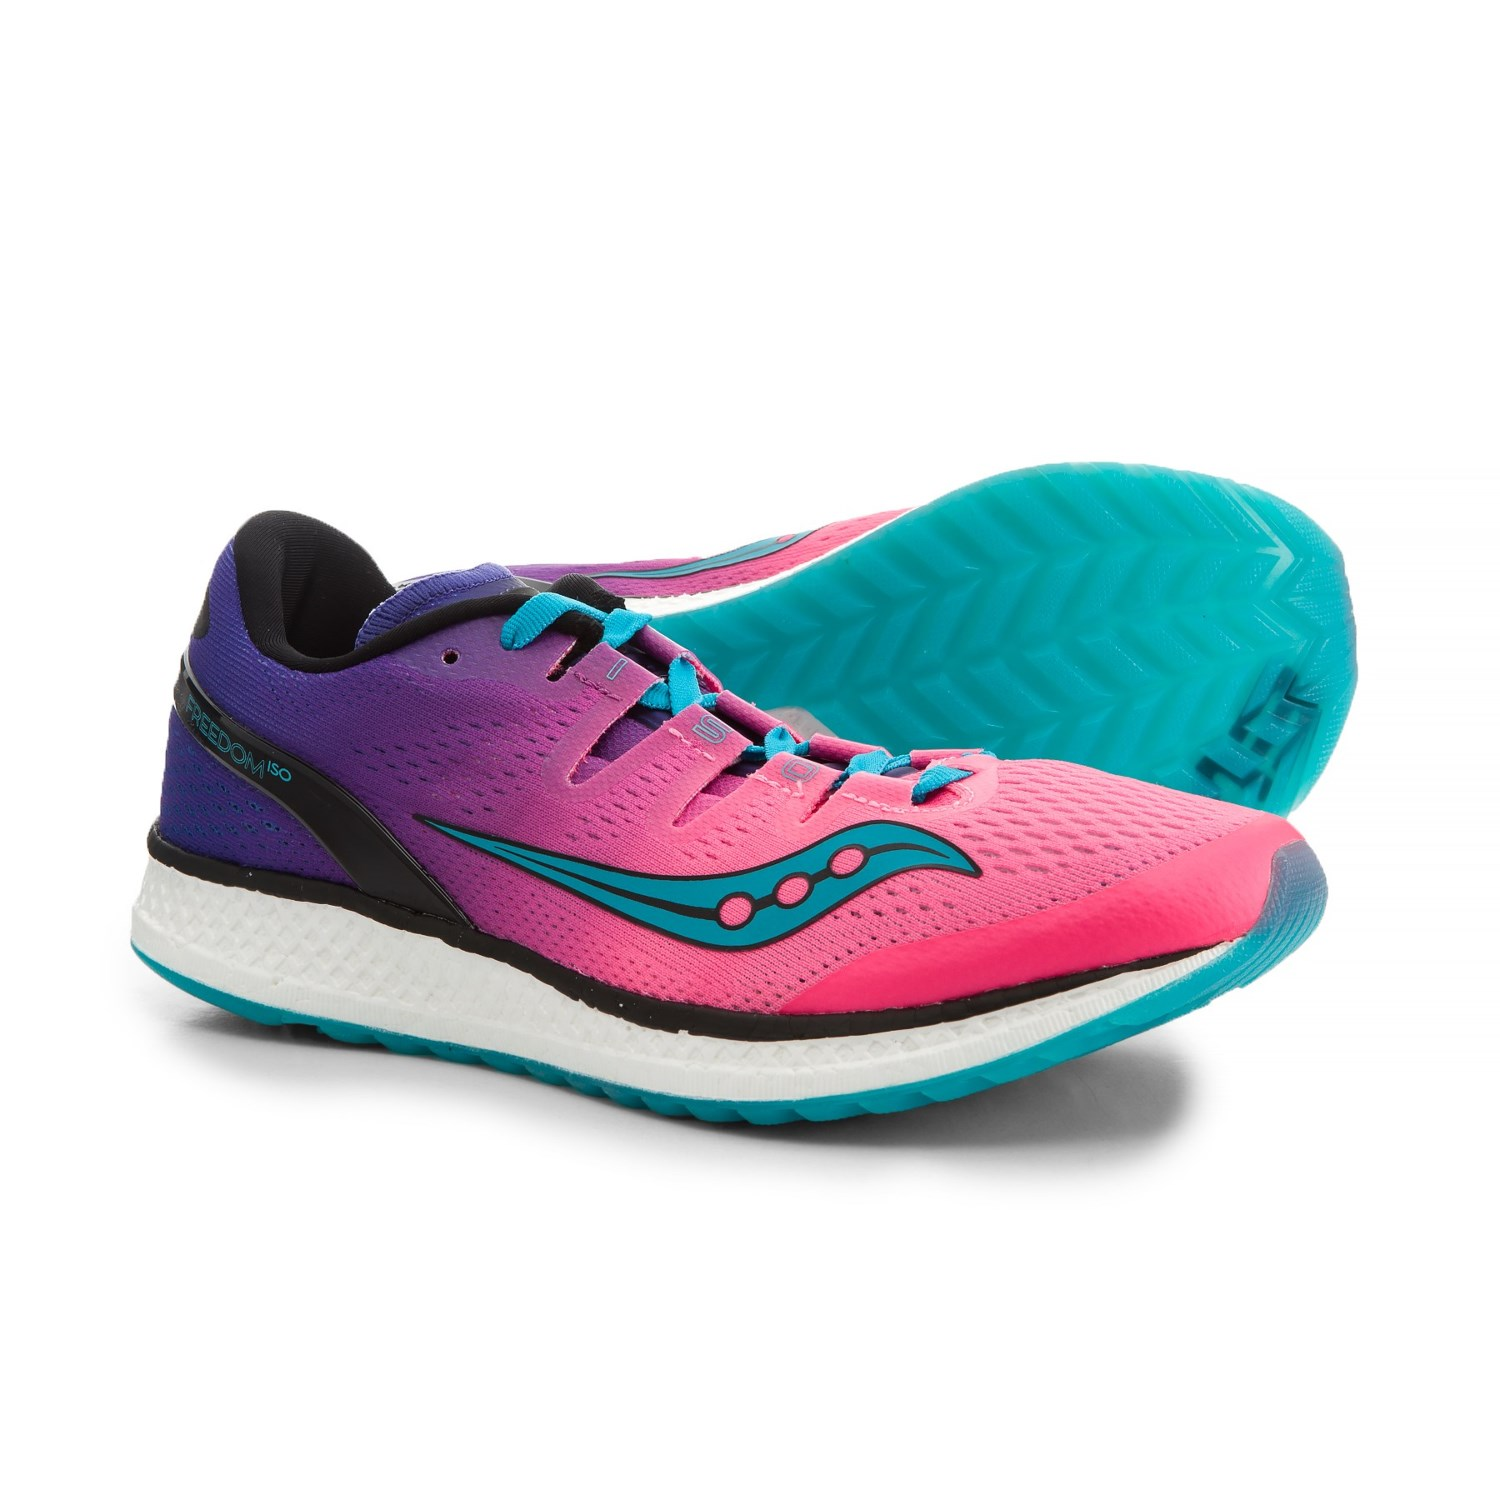 Saucony Freedom ISO Running Shoes (For Women) - Save 43%